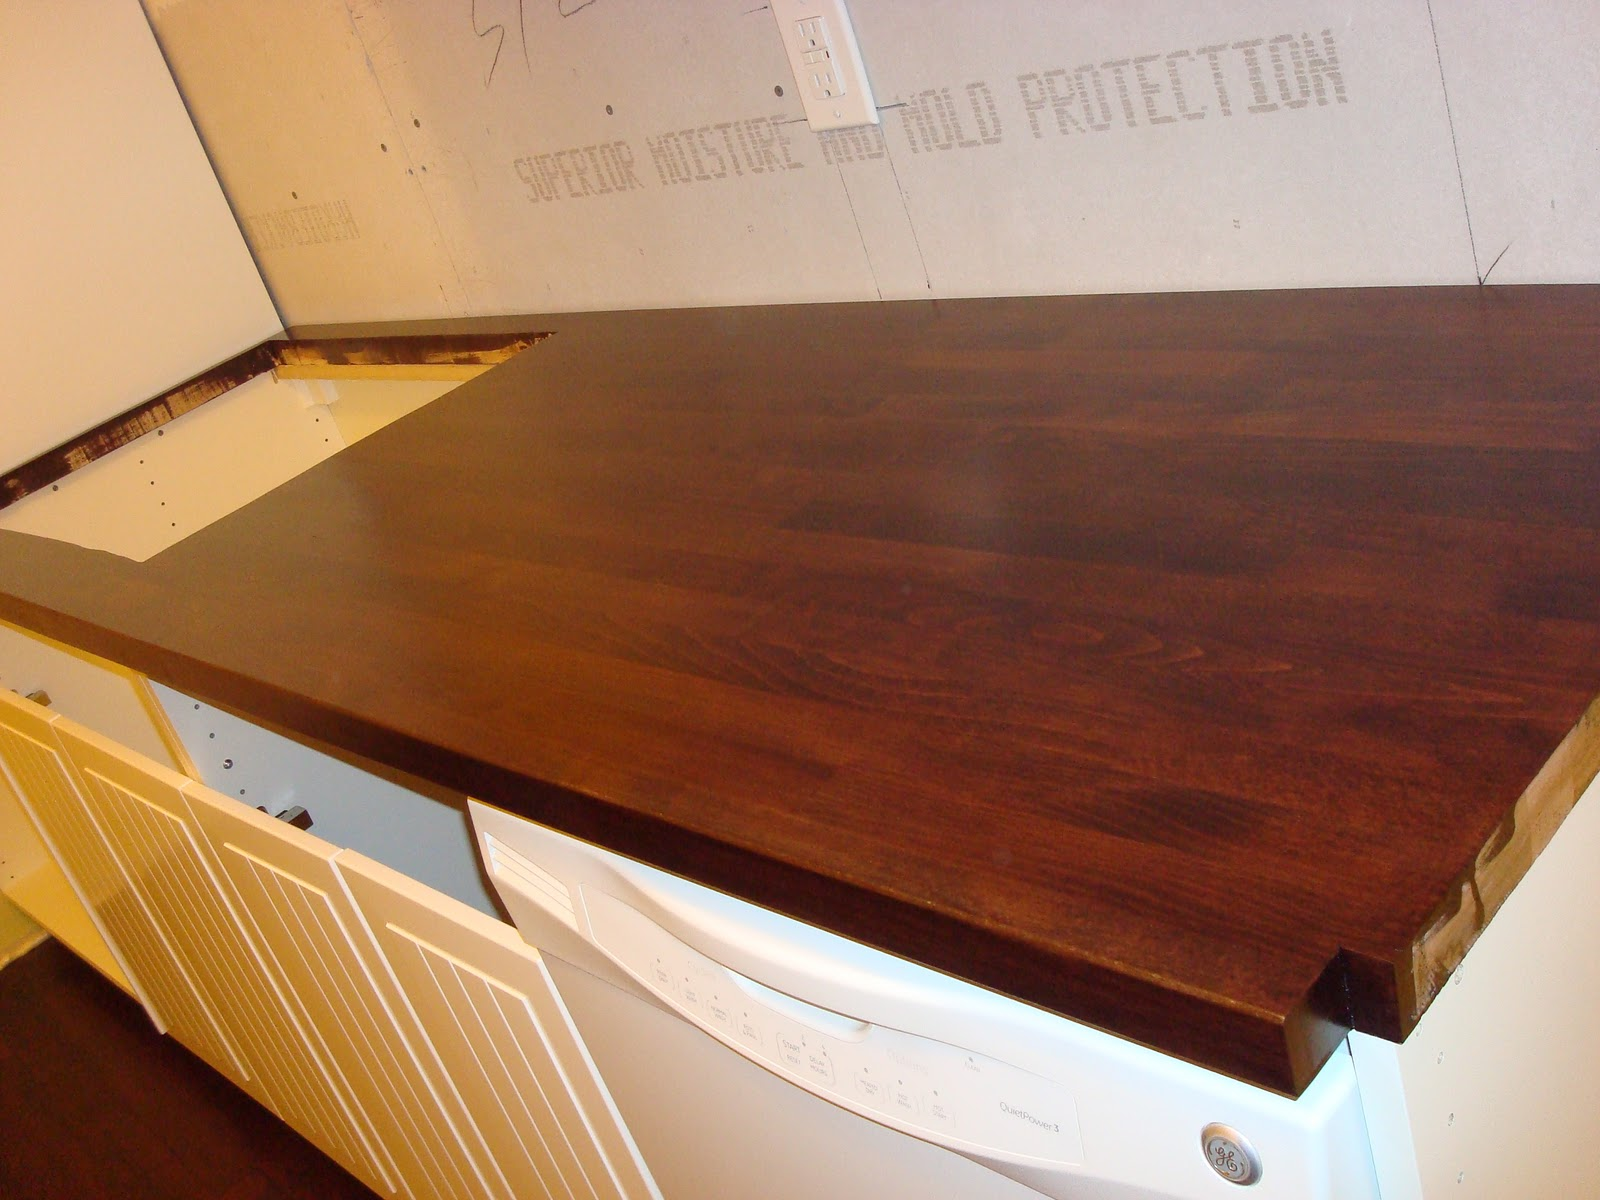 Best Finish For Butcher Block Countertop: 1800's House Renovations: Finishing The Butcher Block